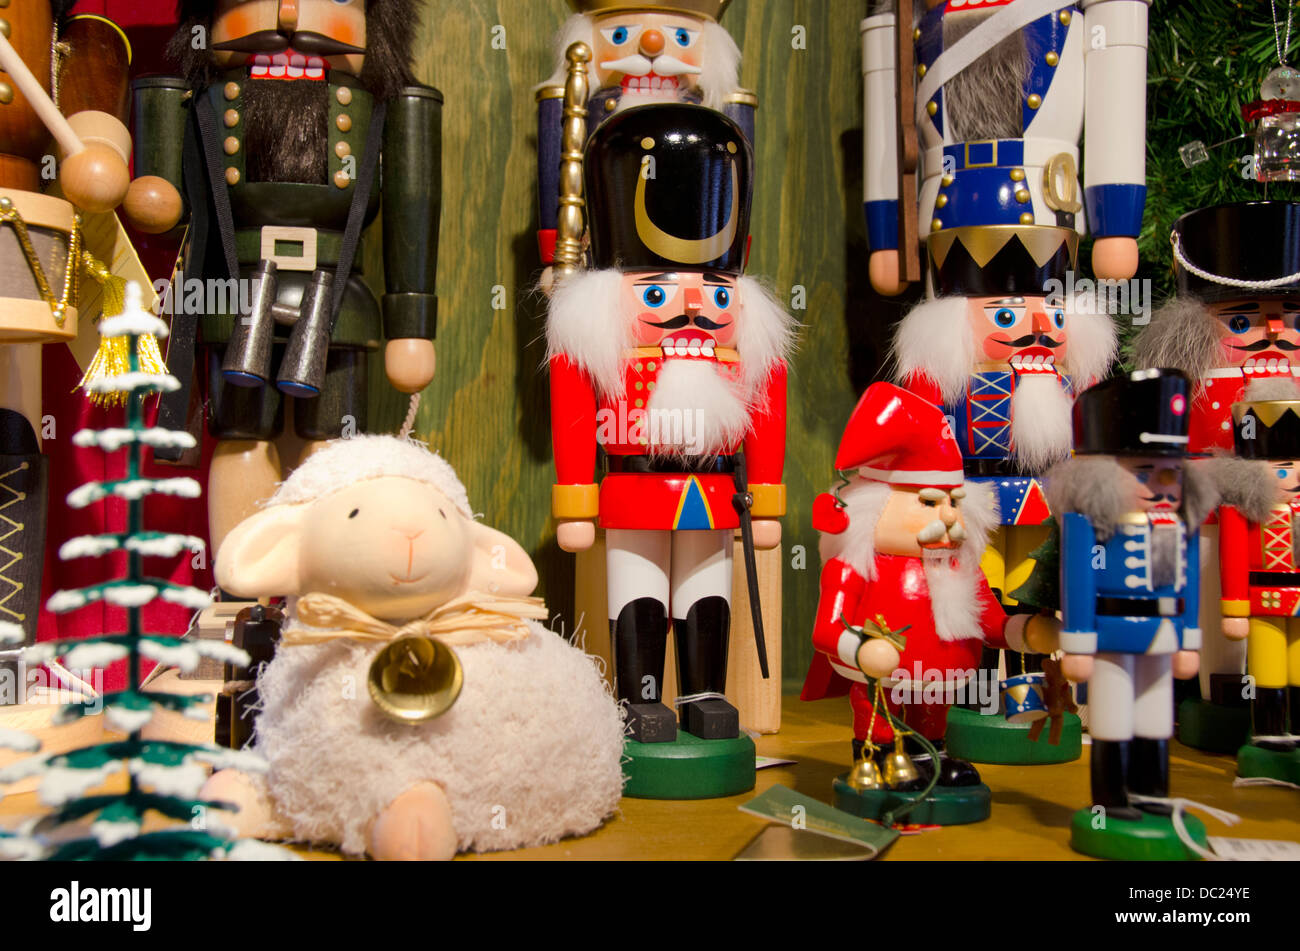 switzerland basel basel winter holiday market at barfusserplatz traditional wooden nutcracker christmas decorations